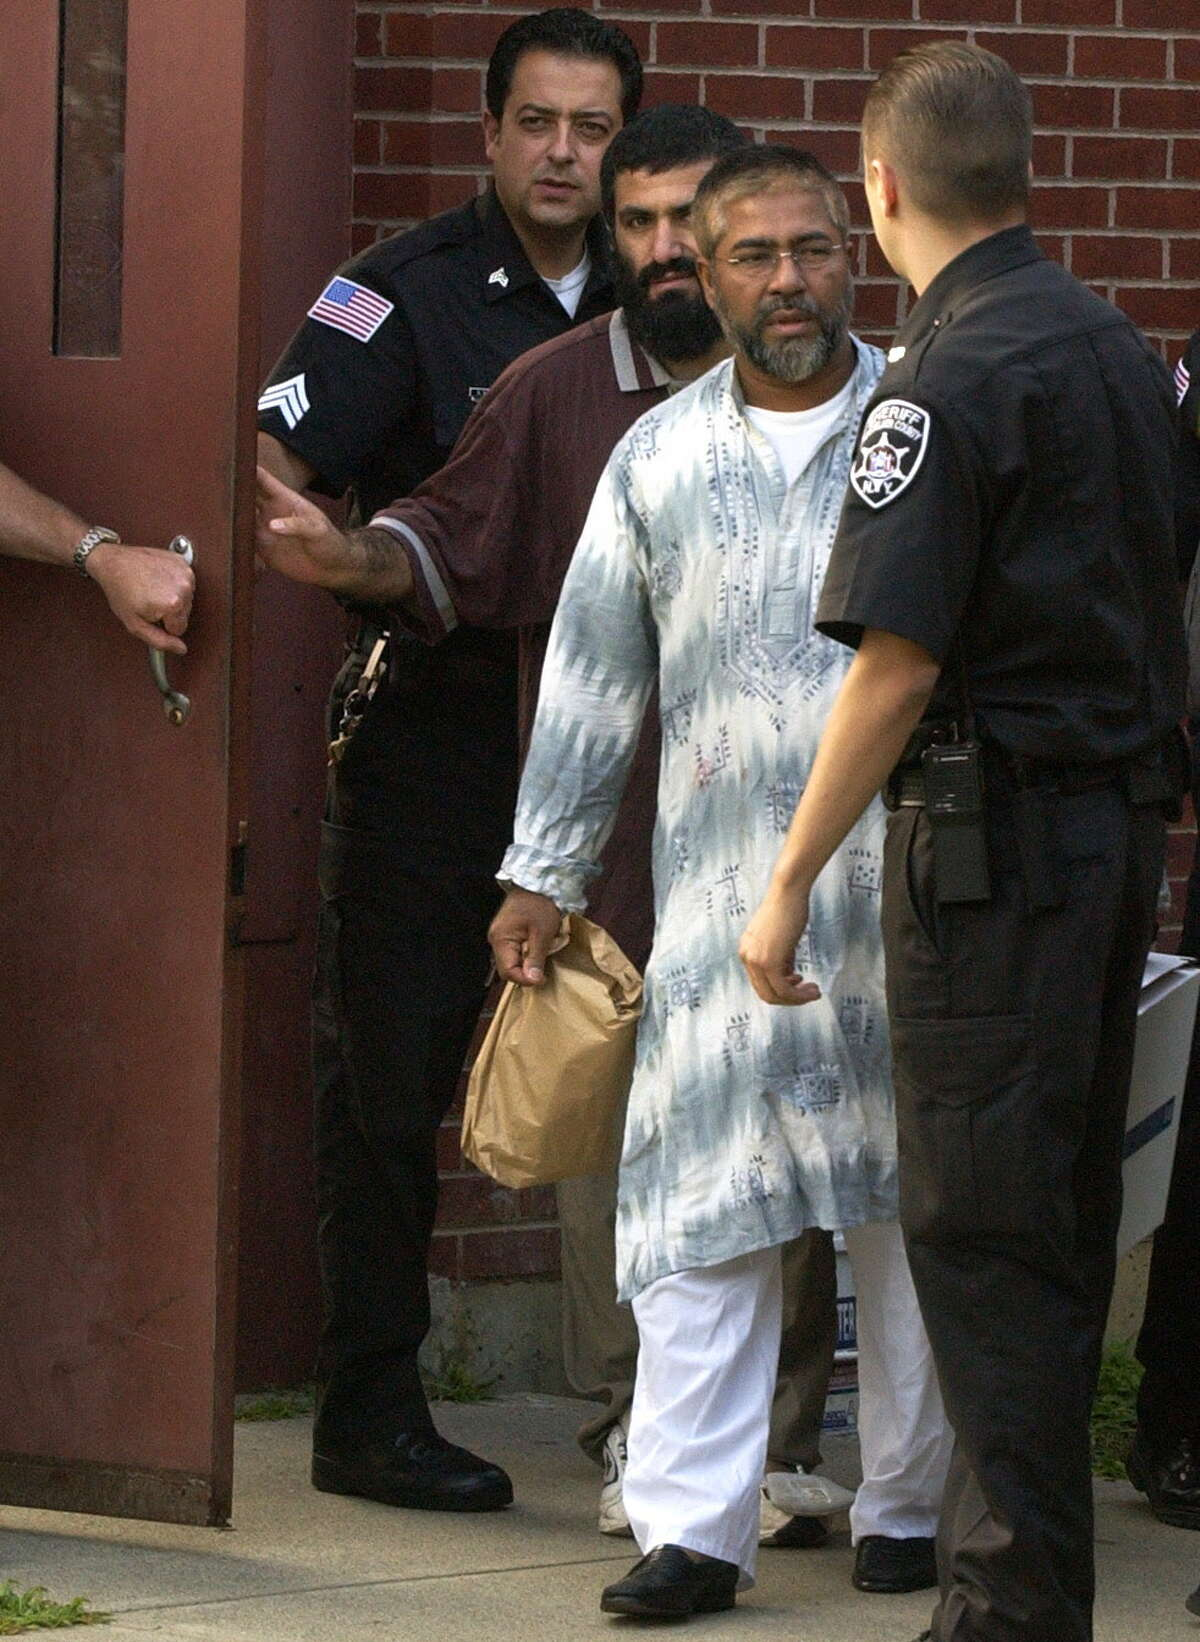 Yassin Muhiddin Aref, left, and Mohammed Mosharref Hossain, right, are released on bail from the Rensselaer County Jail, Wednesday, Aug. 25, 2004. (Will Waldron/Times Union archive)